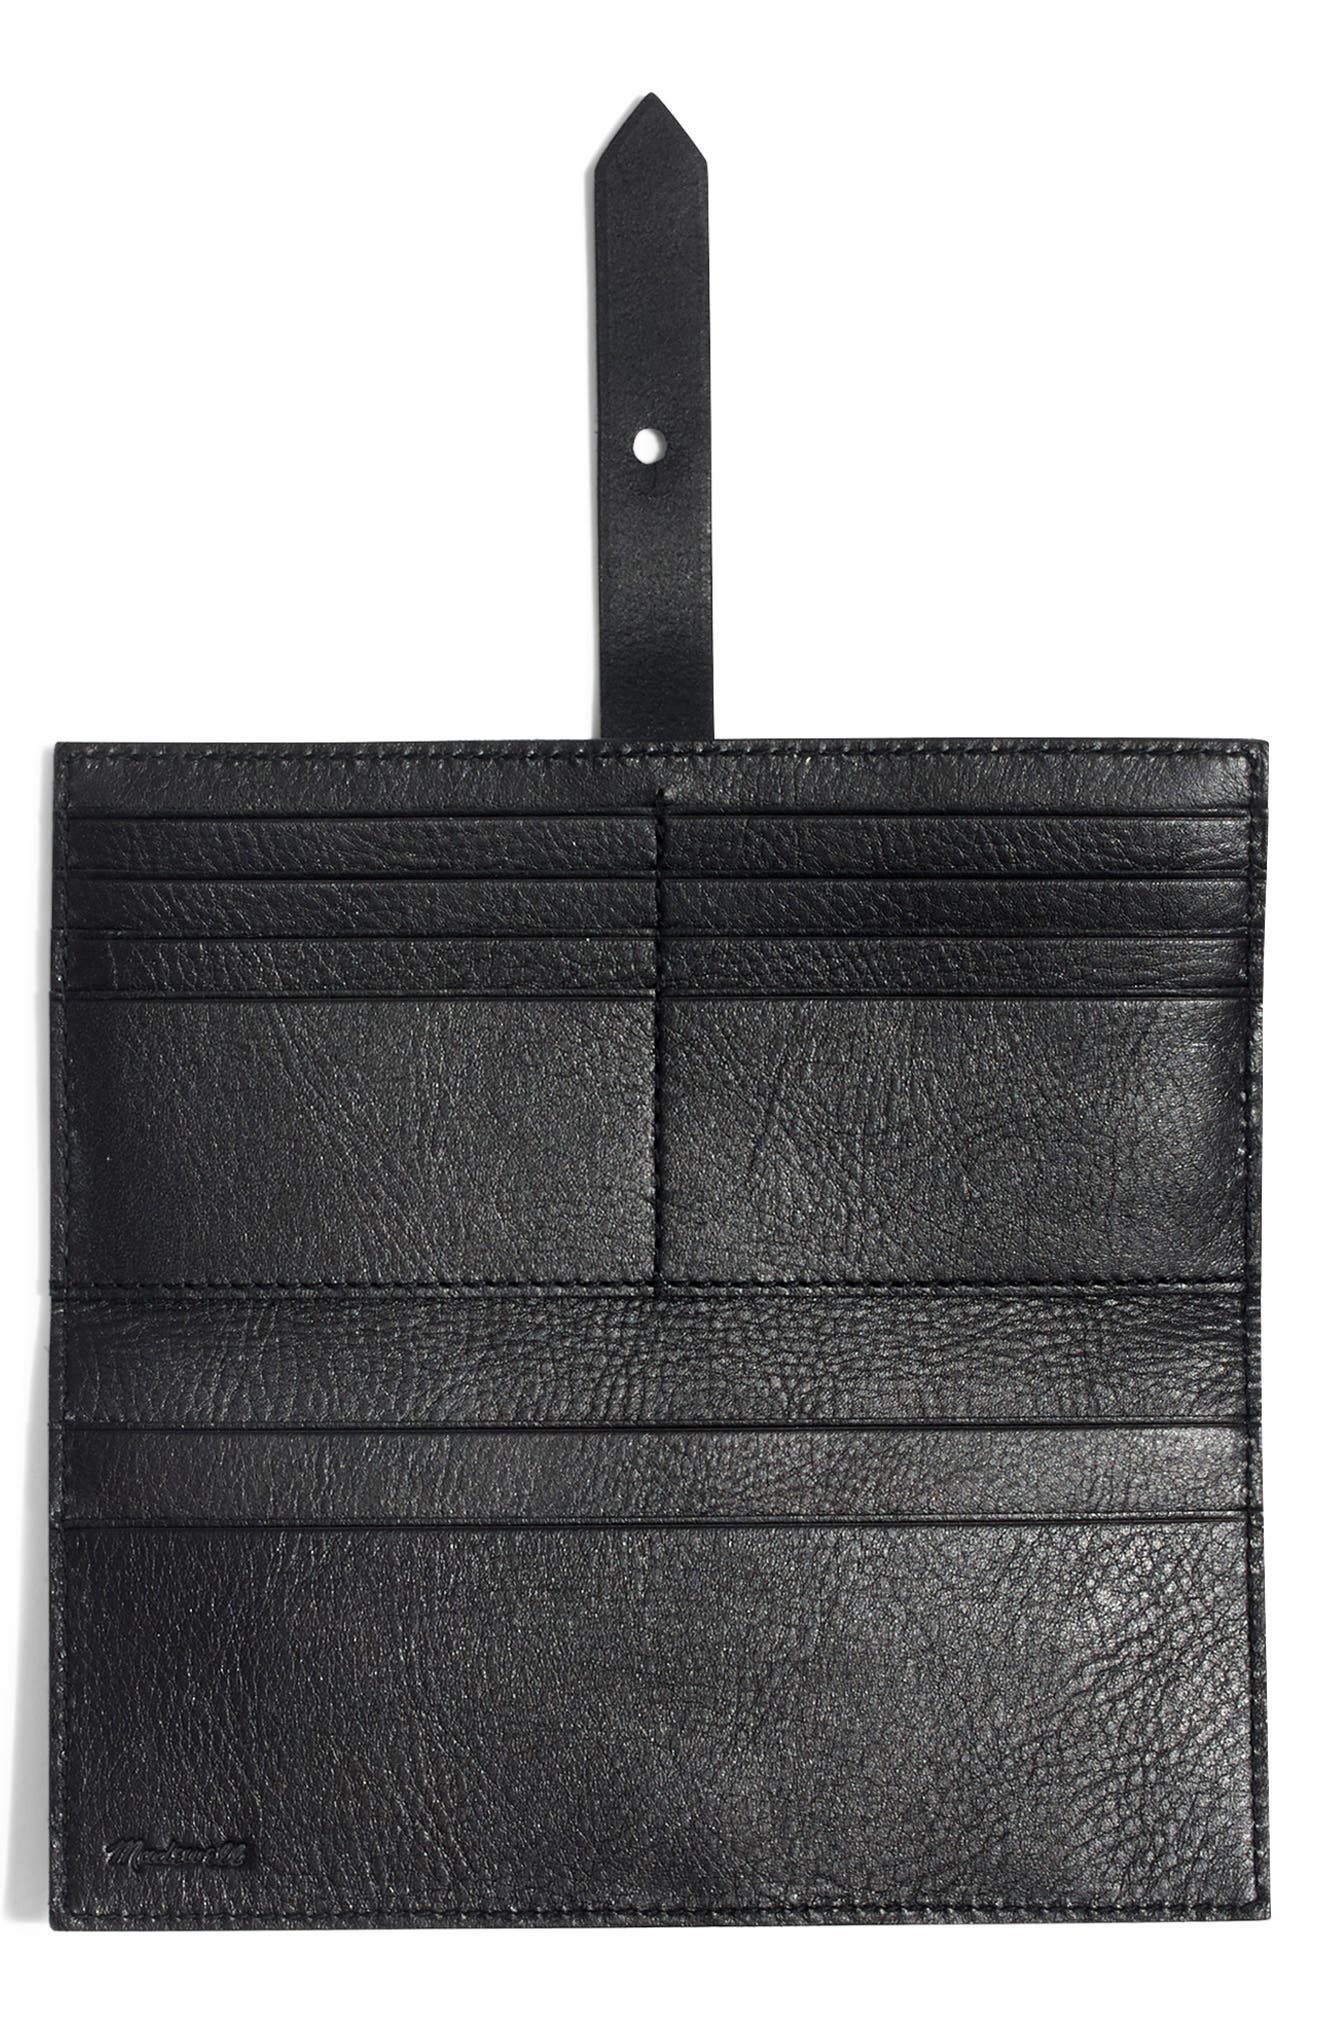 MADEWELL, New Post Leather Wallet, Alternate thumbnail 2, color, TRUE BLACK